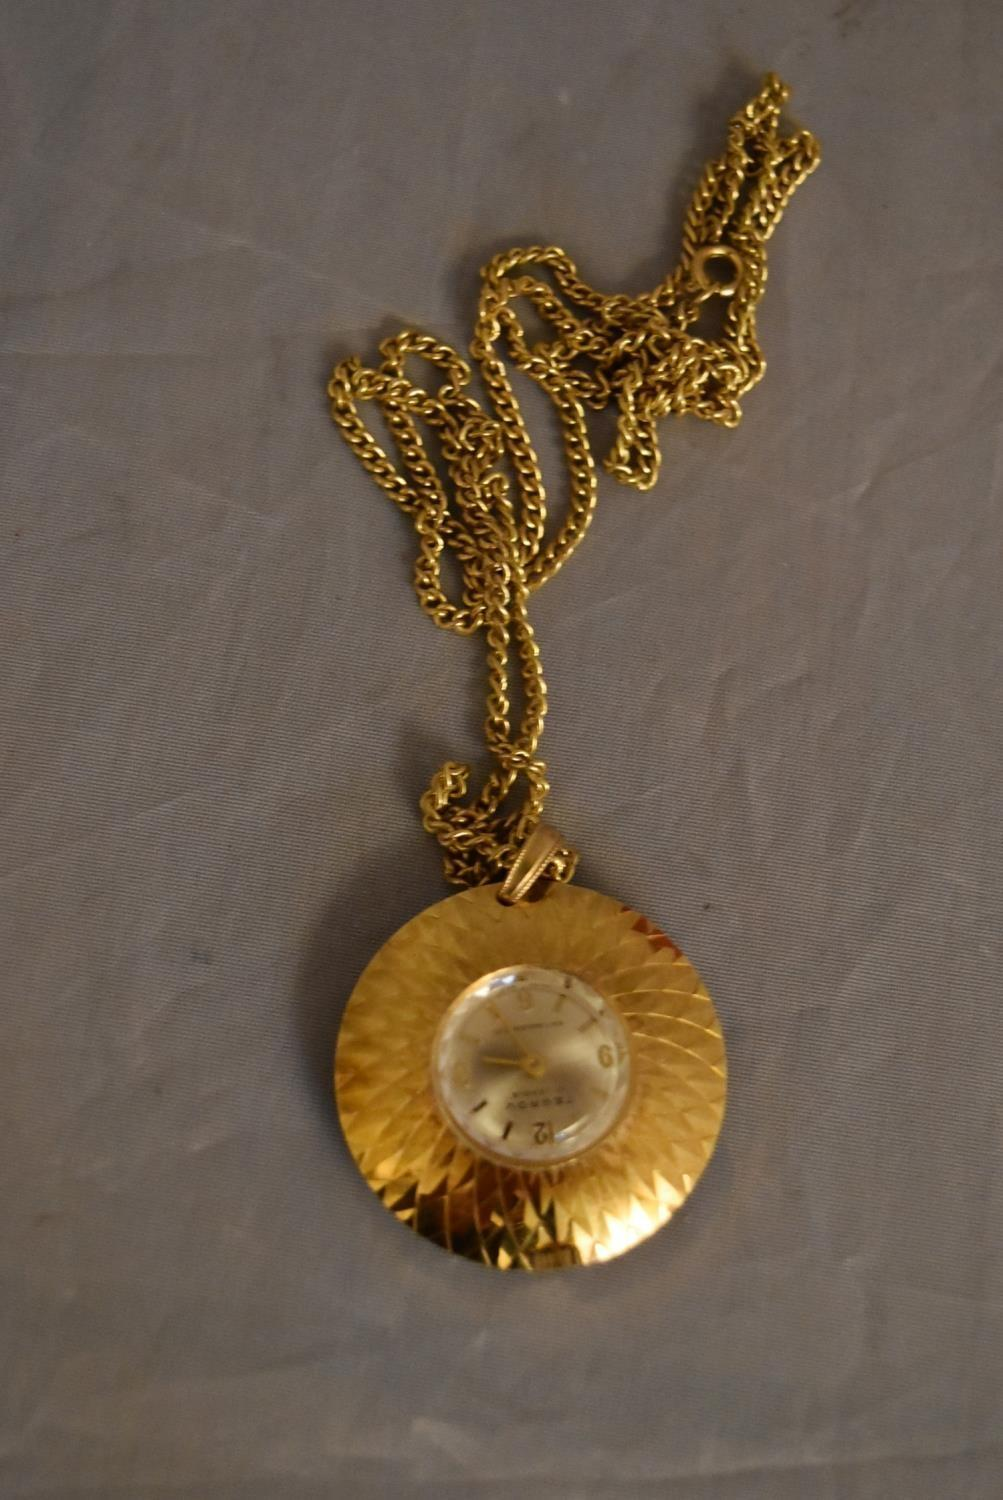 A vintage Tegrov gold tone pendant antimagnetic watch and chain. Impressed floral design to the back